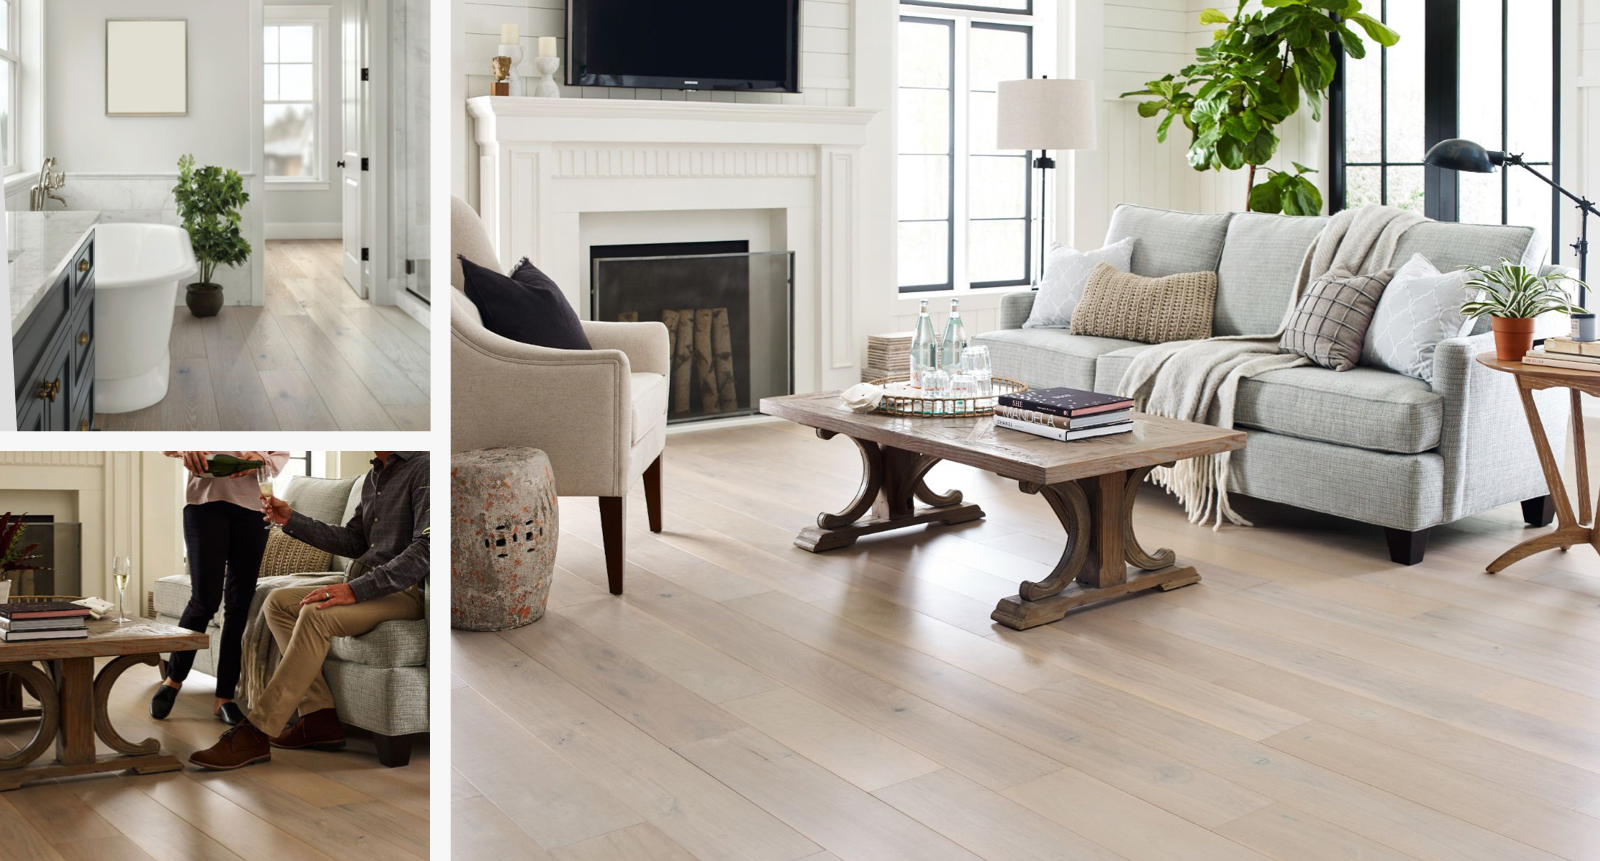 Floorte waterproof hardwood flooring for your home | Choice Floor Center